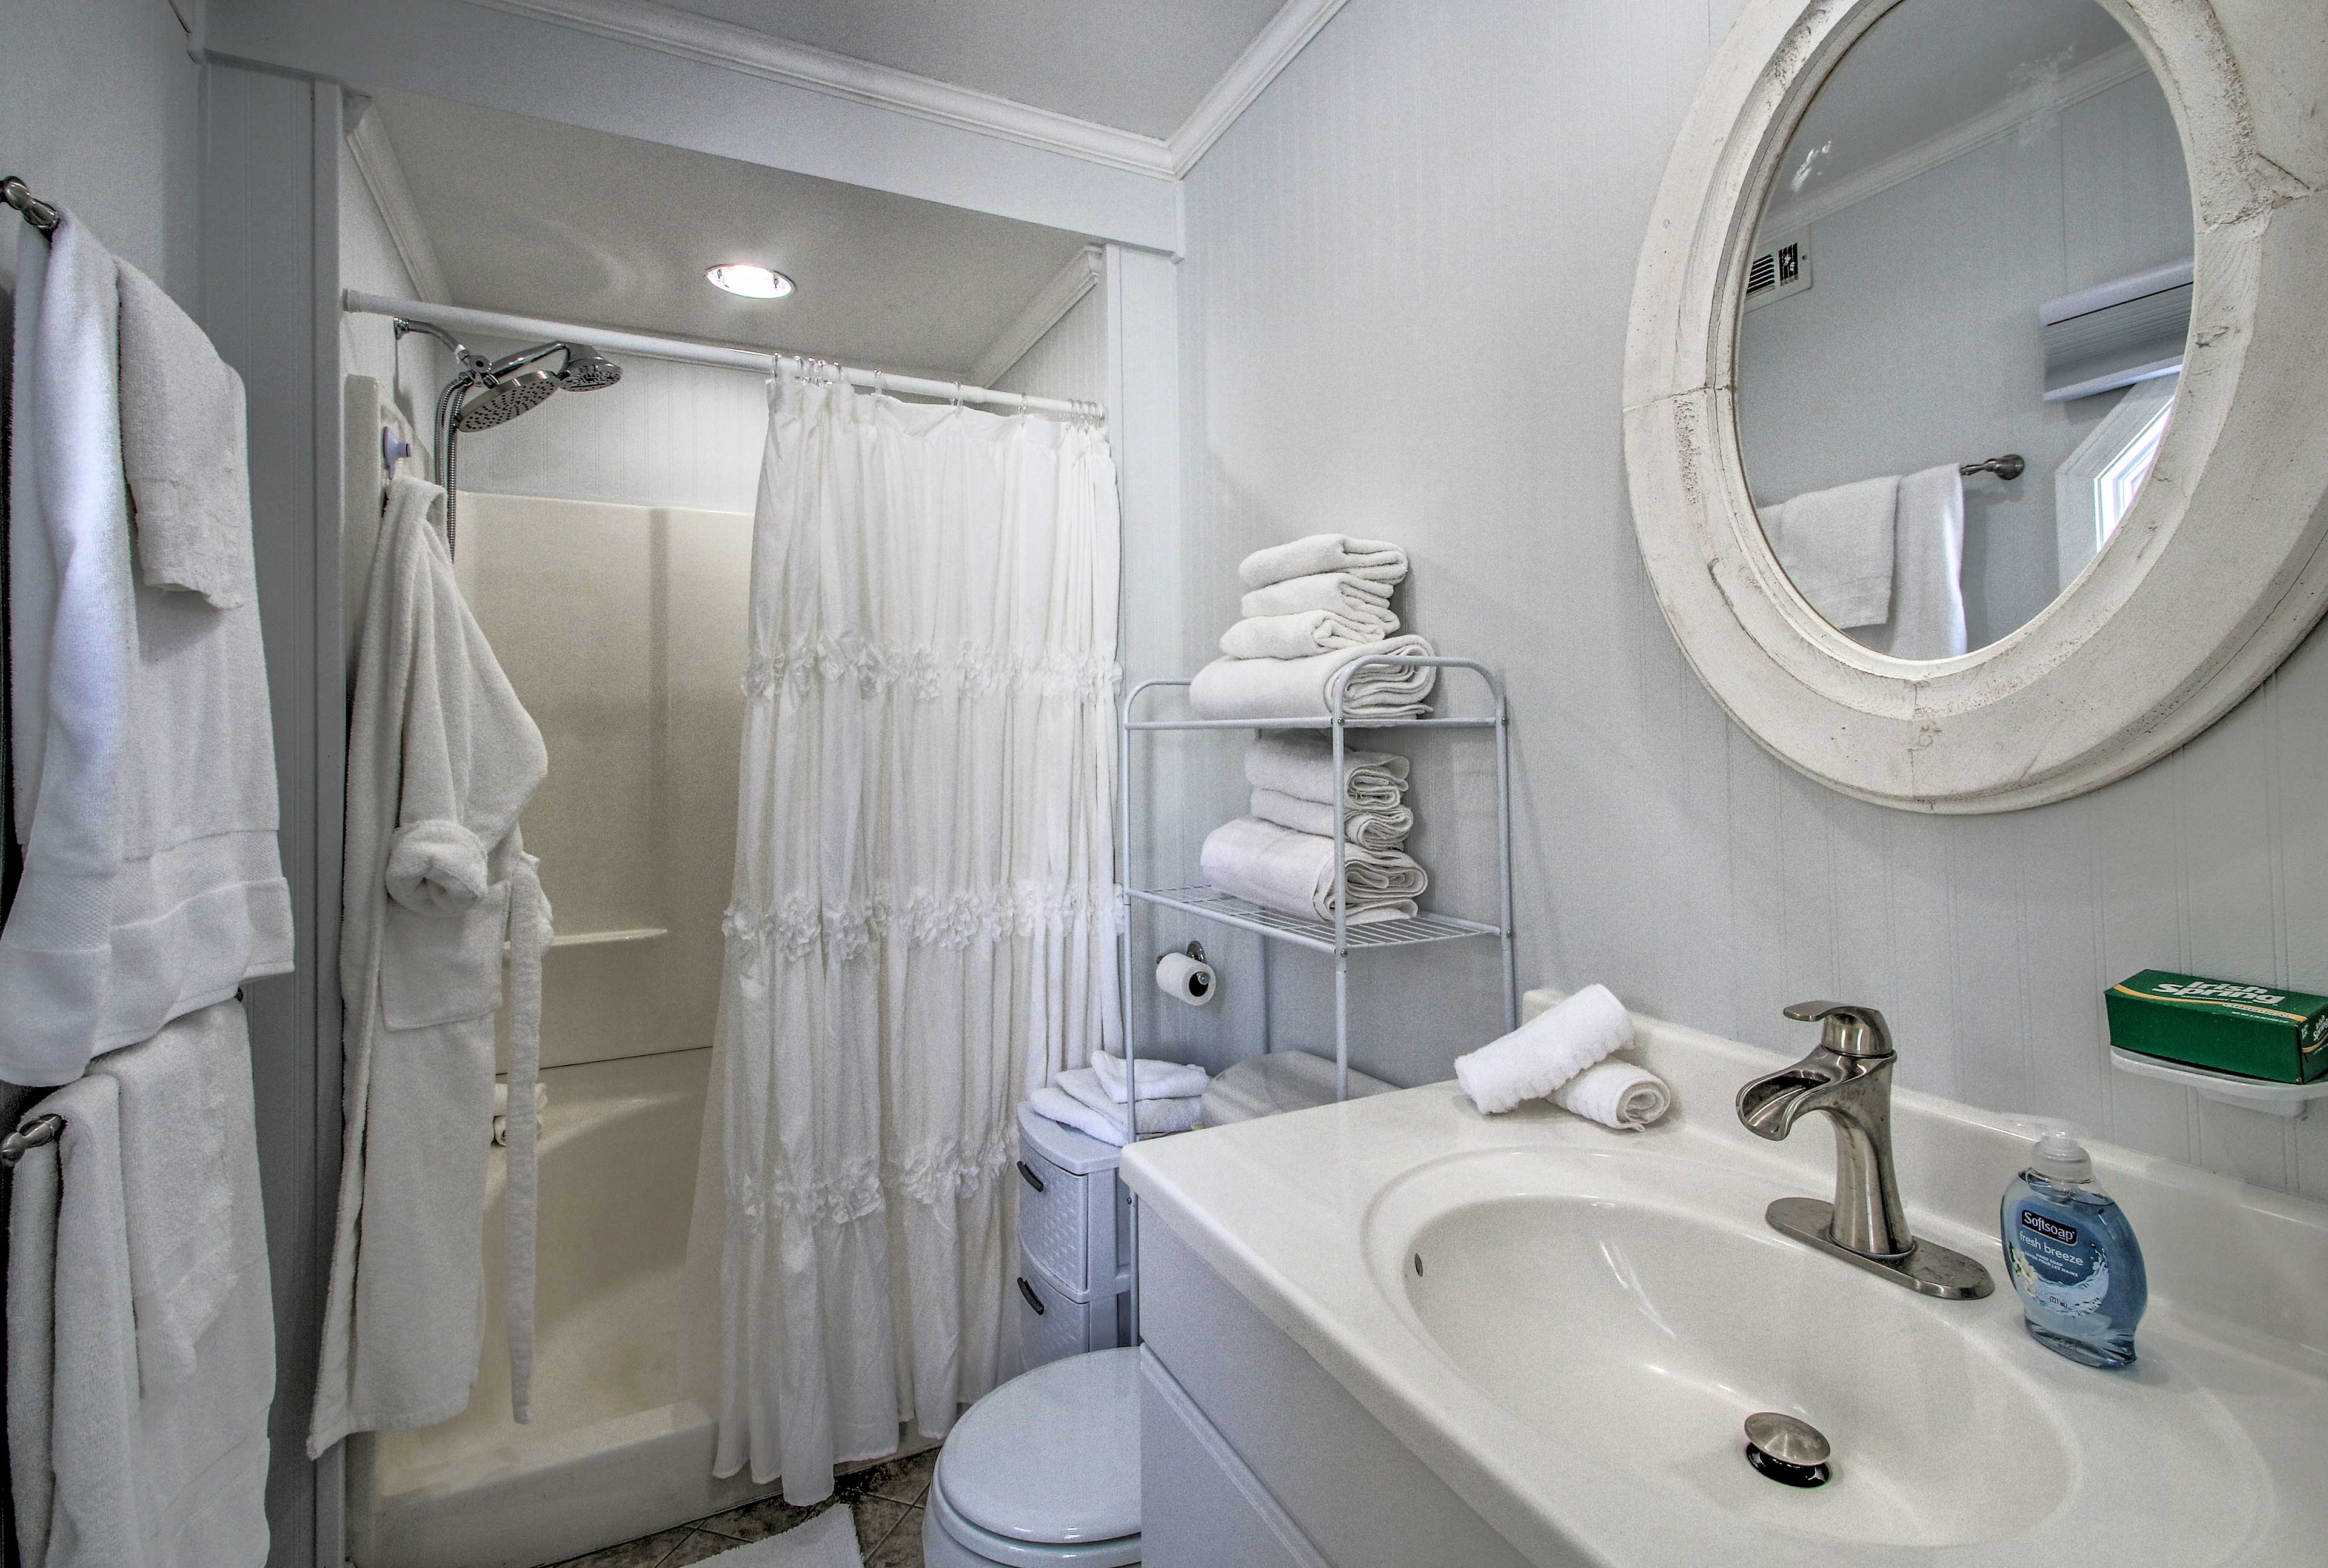 Enjoy a hot shower and then curl up in a fluffy robe.